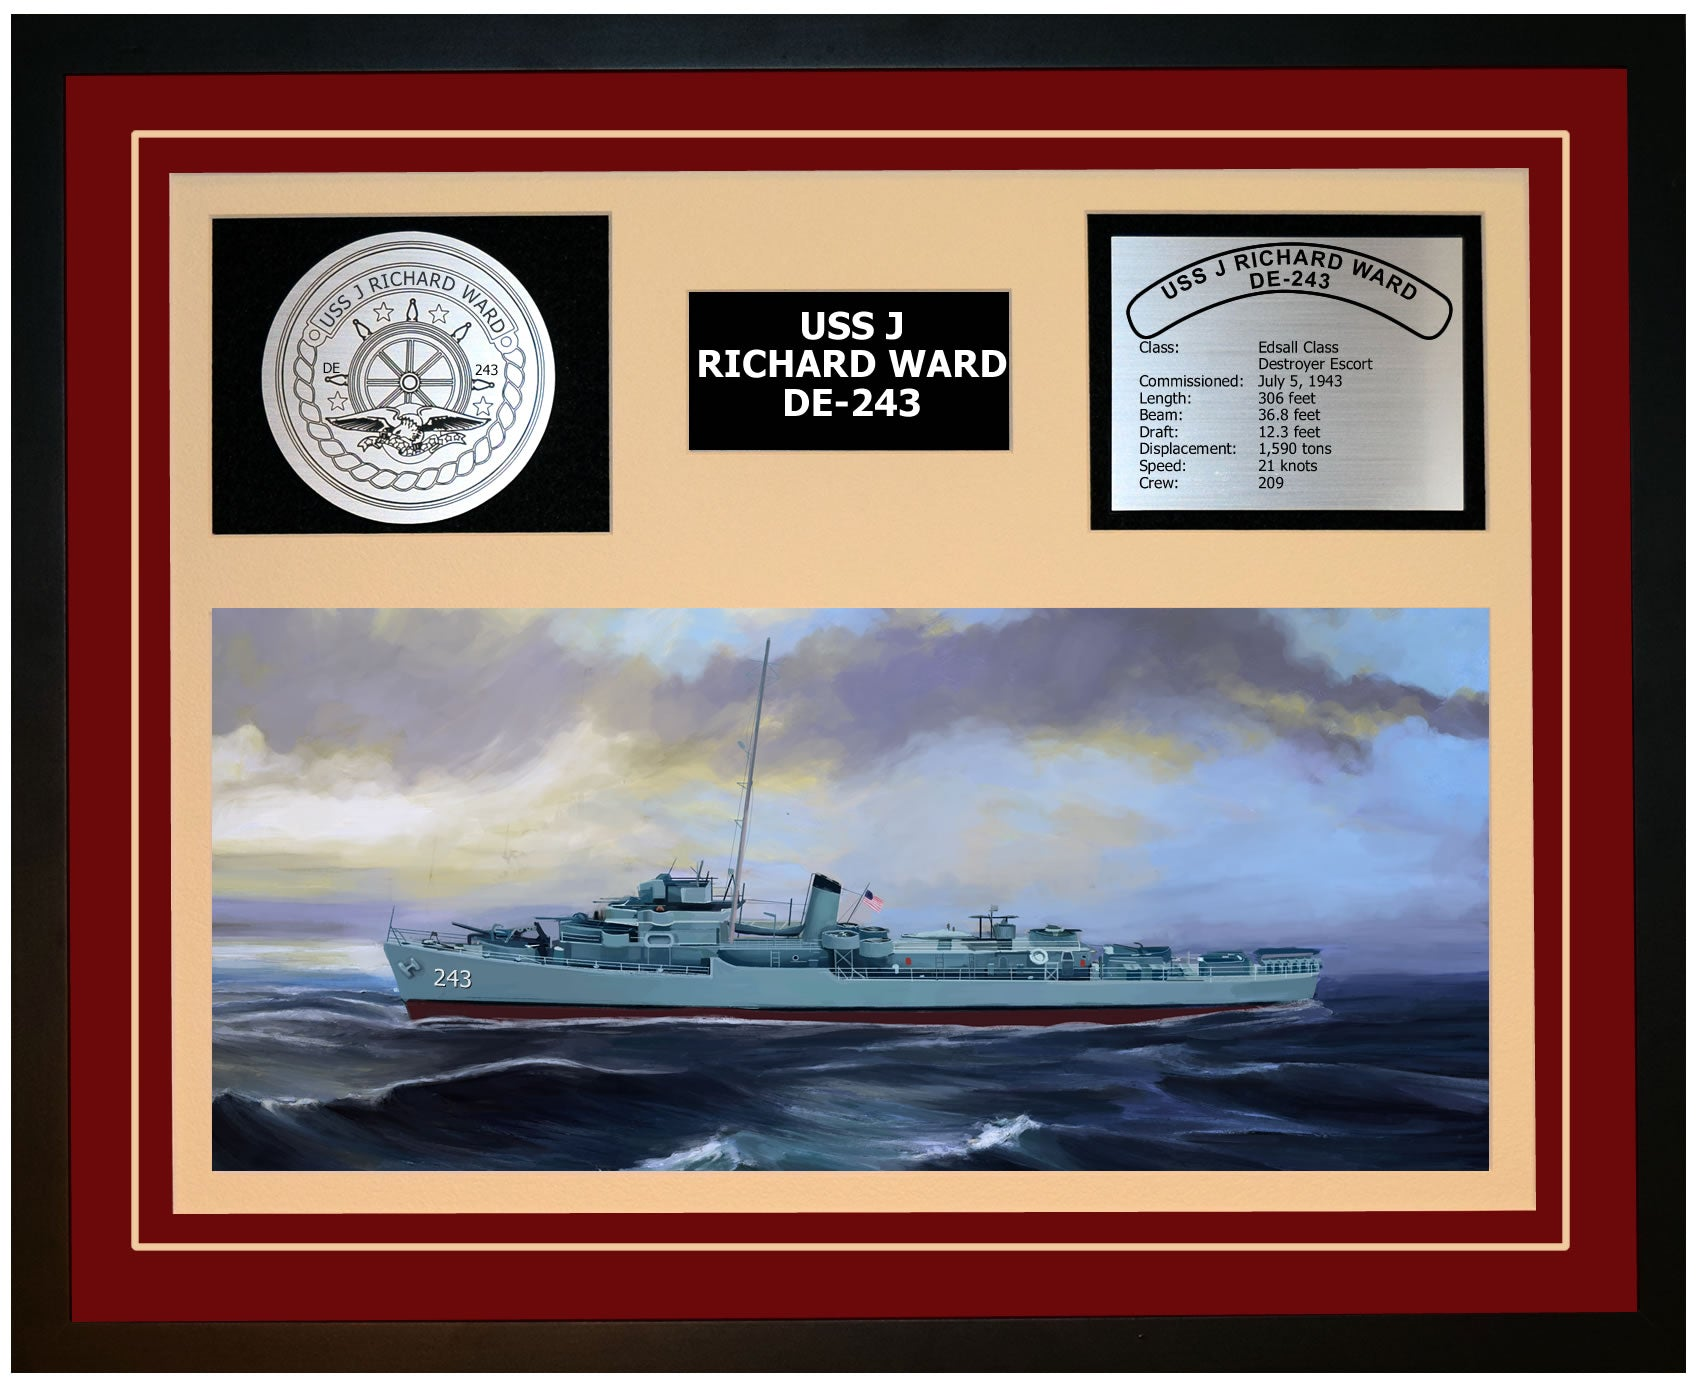 USS J RICHARD WARD DE-243 Framed Navy Ship Display Burgundy